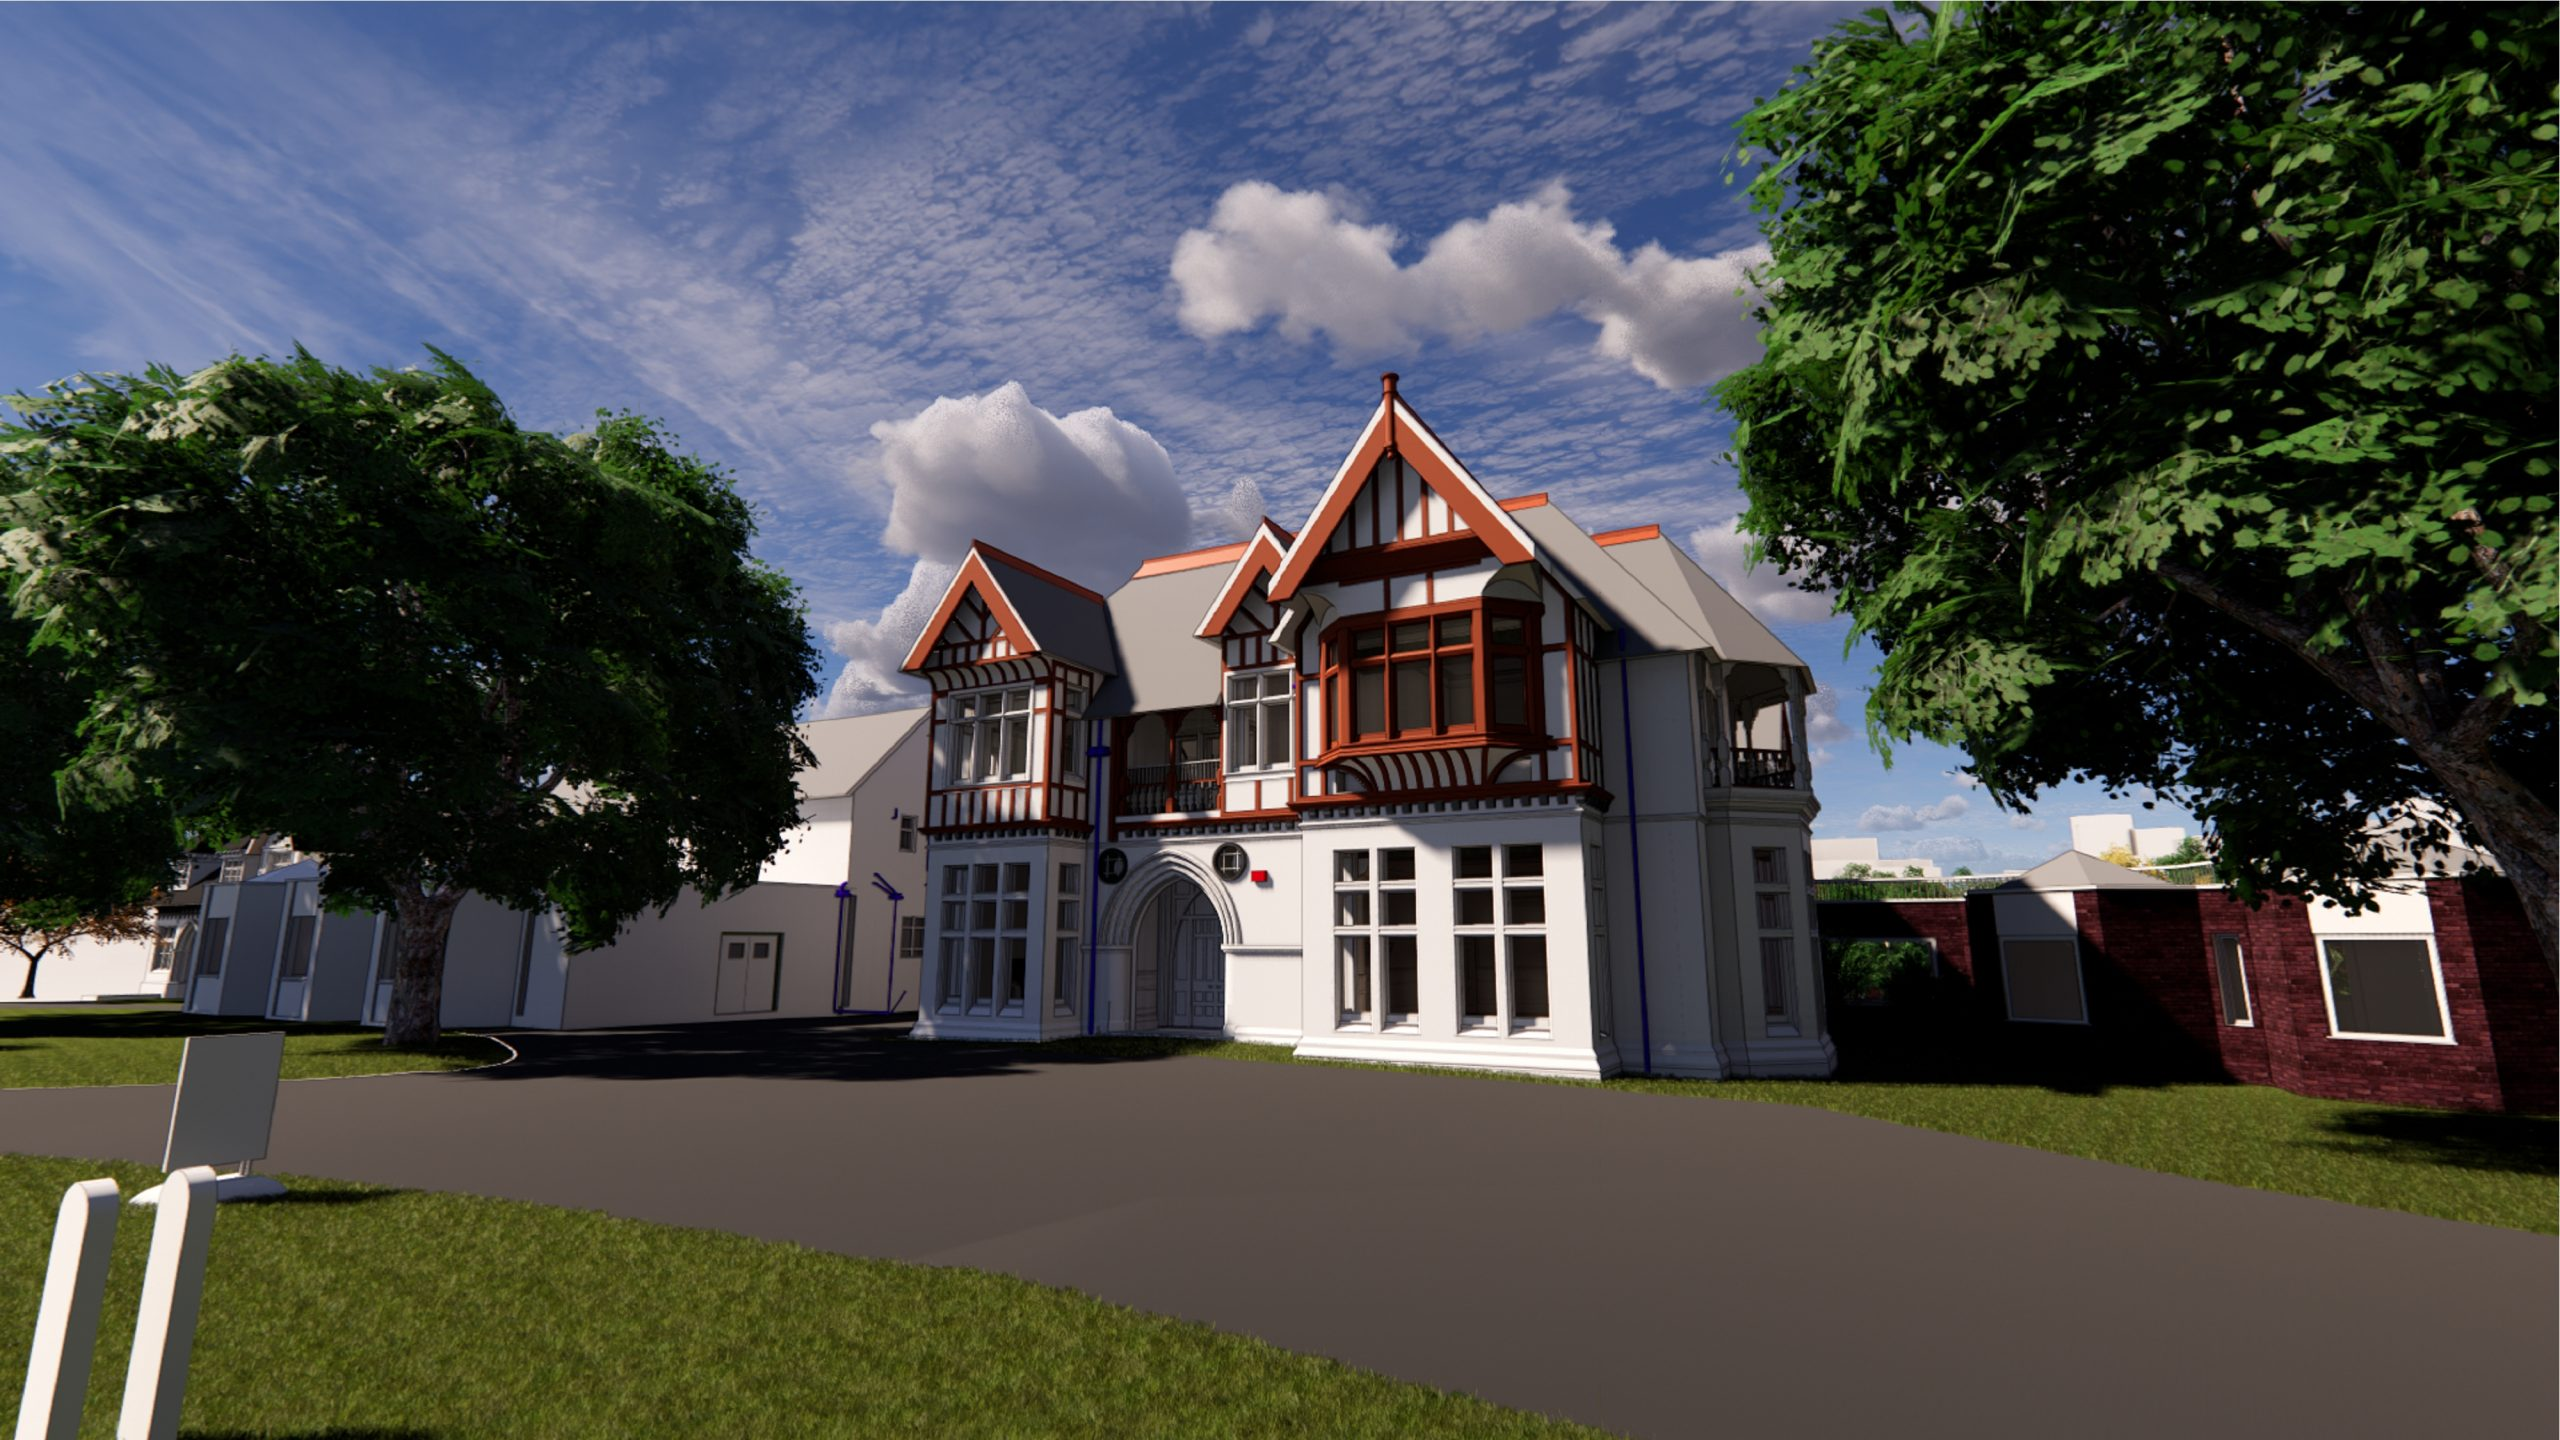 Leicester University Rendering 3D detached house